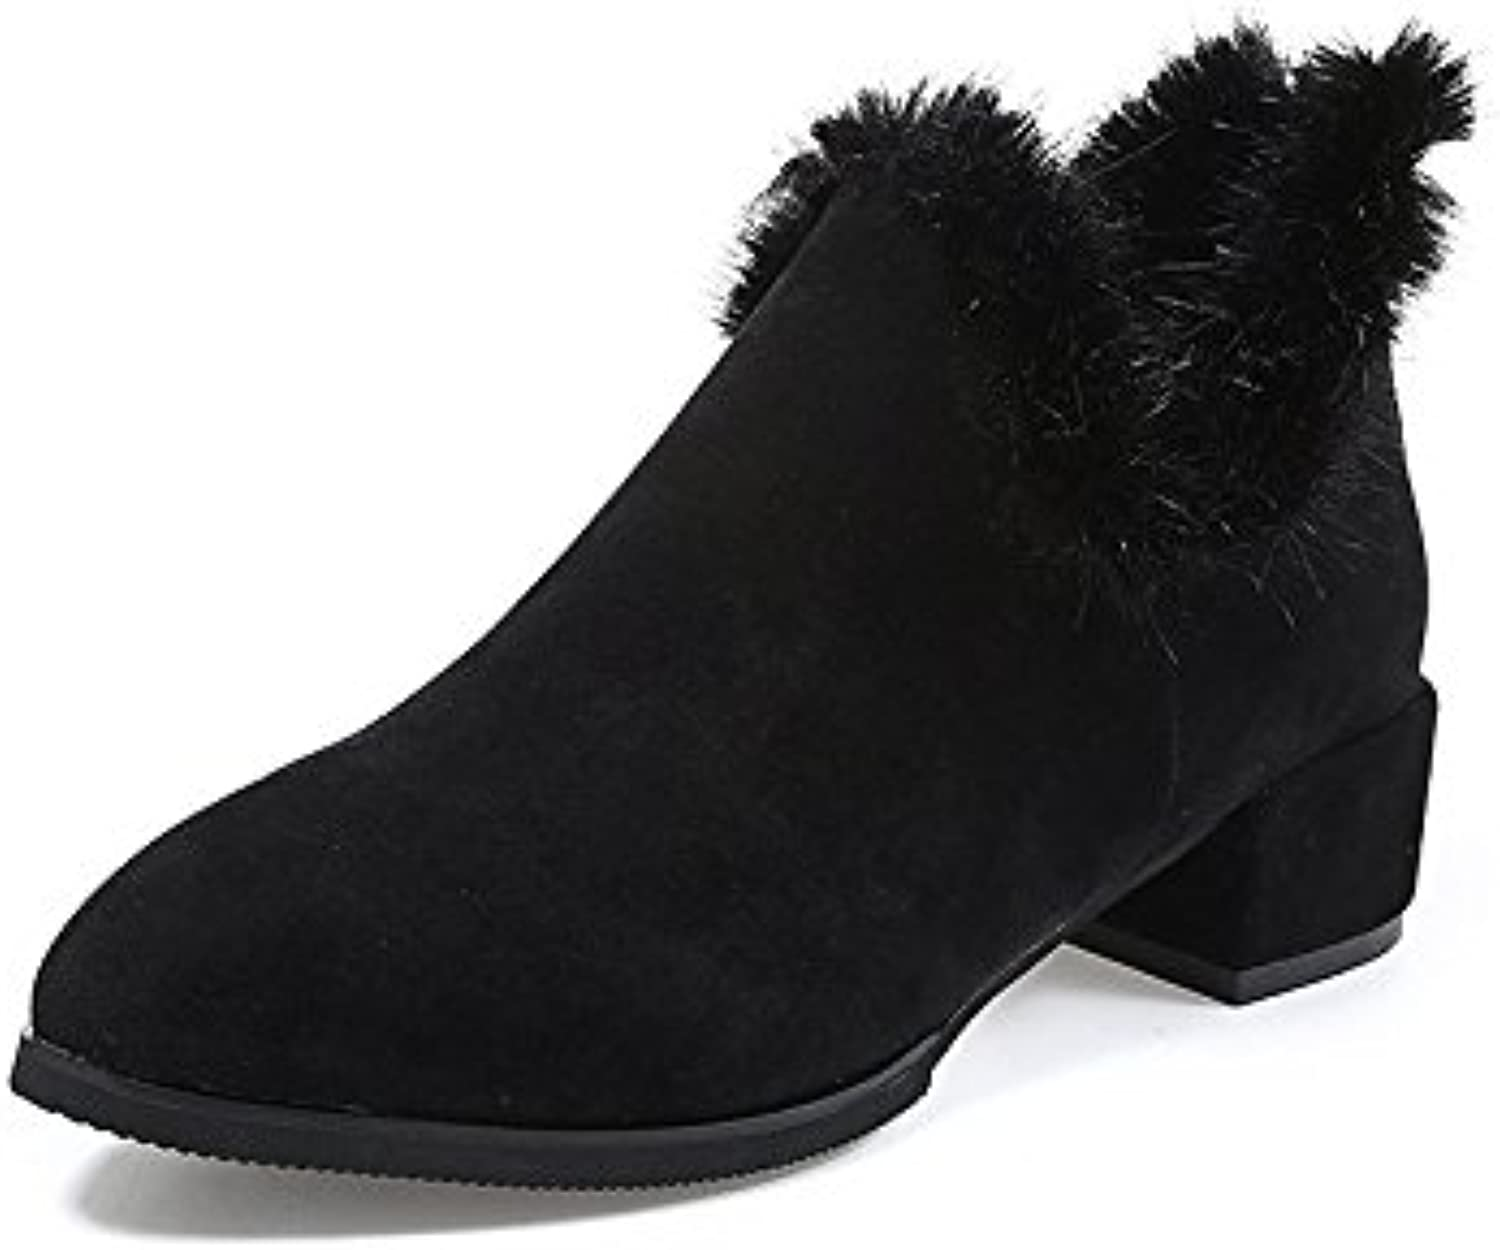 WYMBS Women's shoes Female Boots Autumn Winter Pointed Rough England Suede Plush Zipper,Black,38